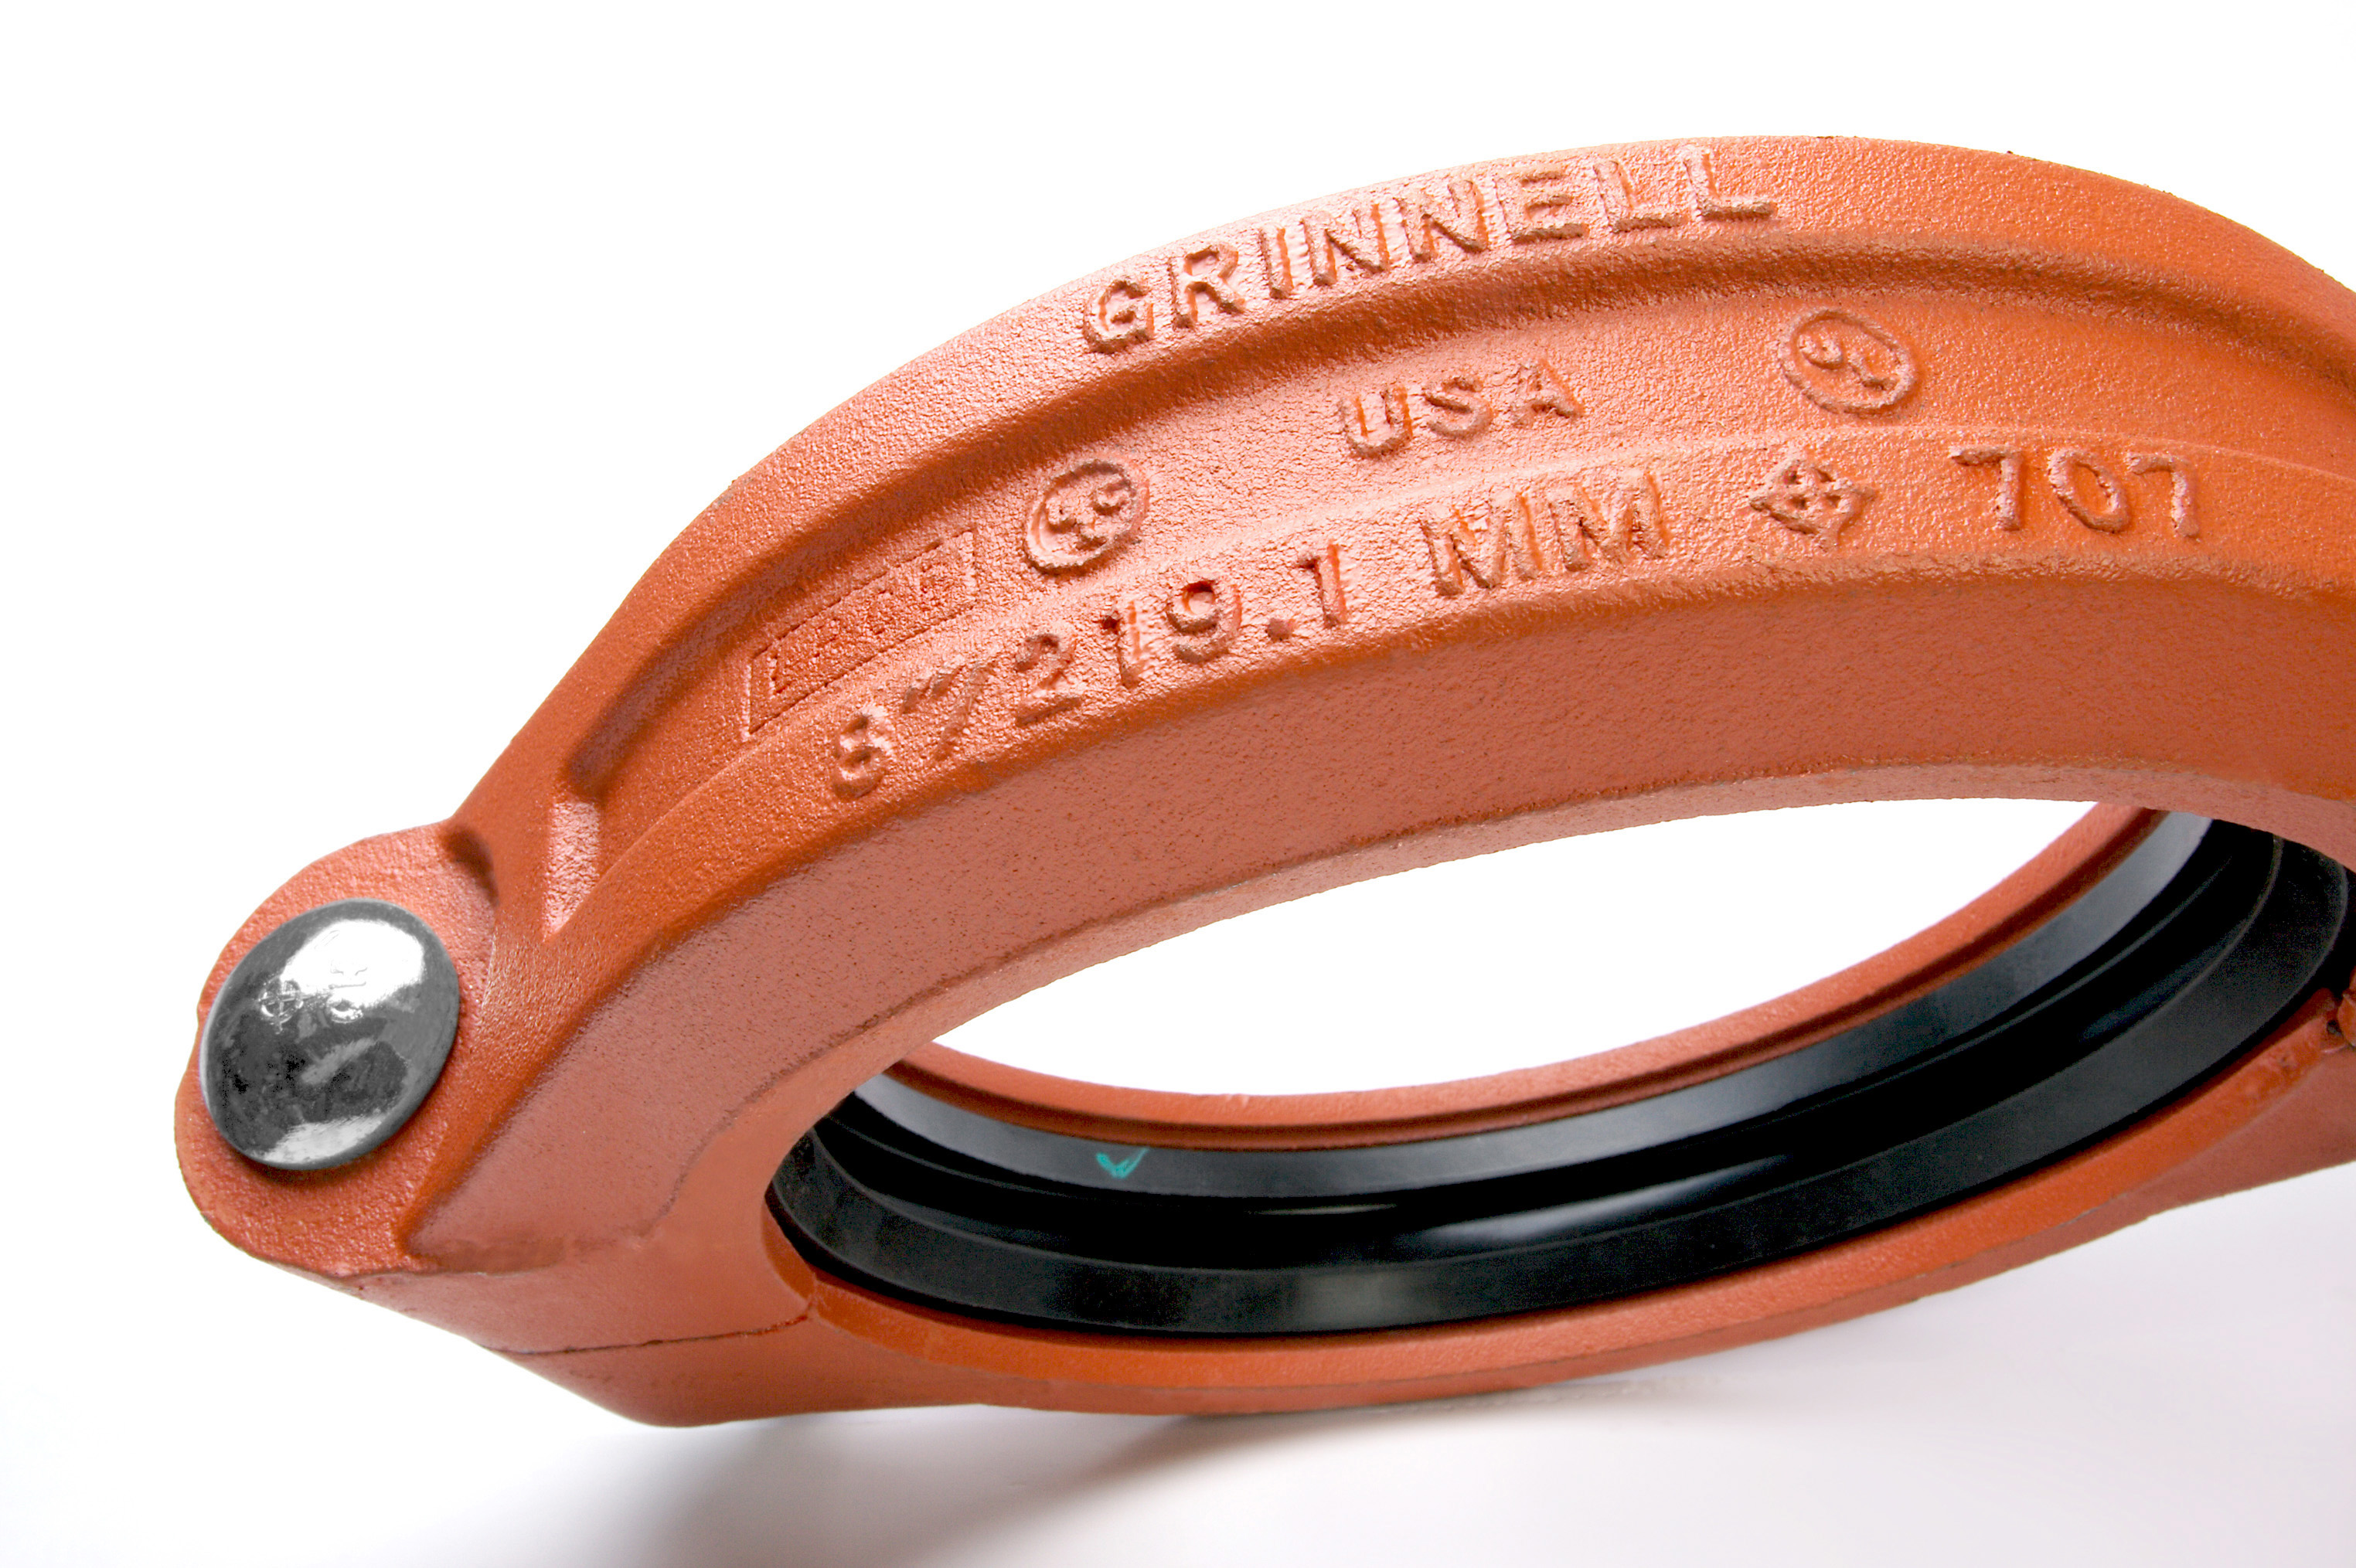 Grinnell Mechanical Products - Wikiwand